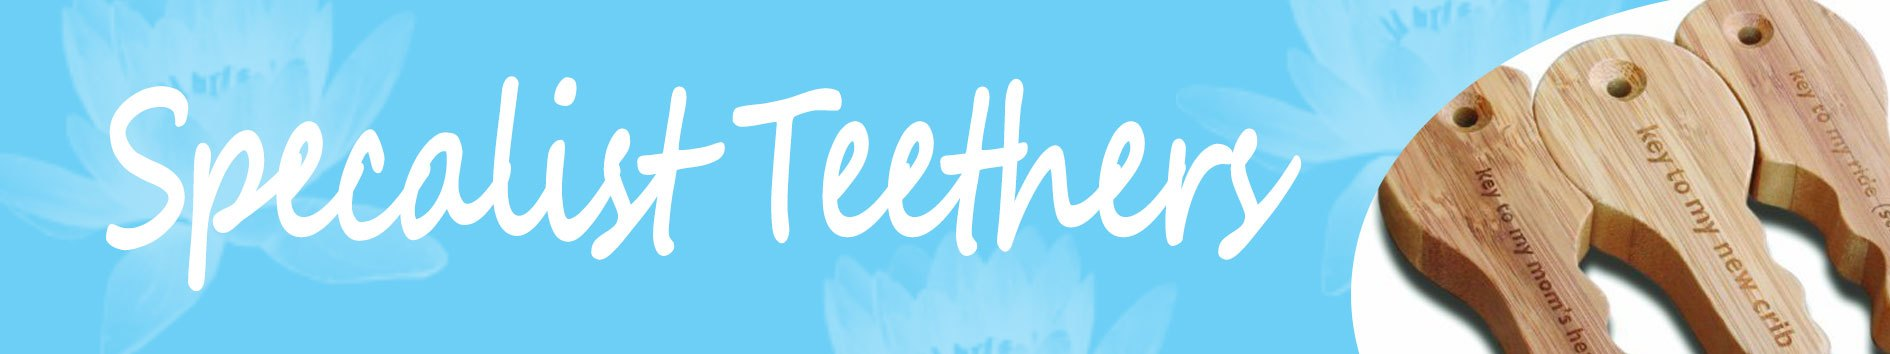 buy wooden and organic baby teethers